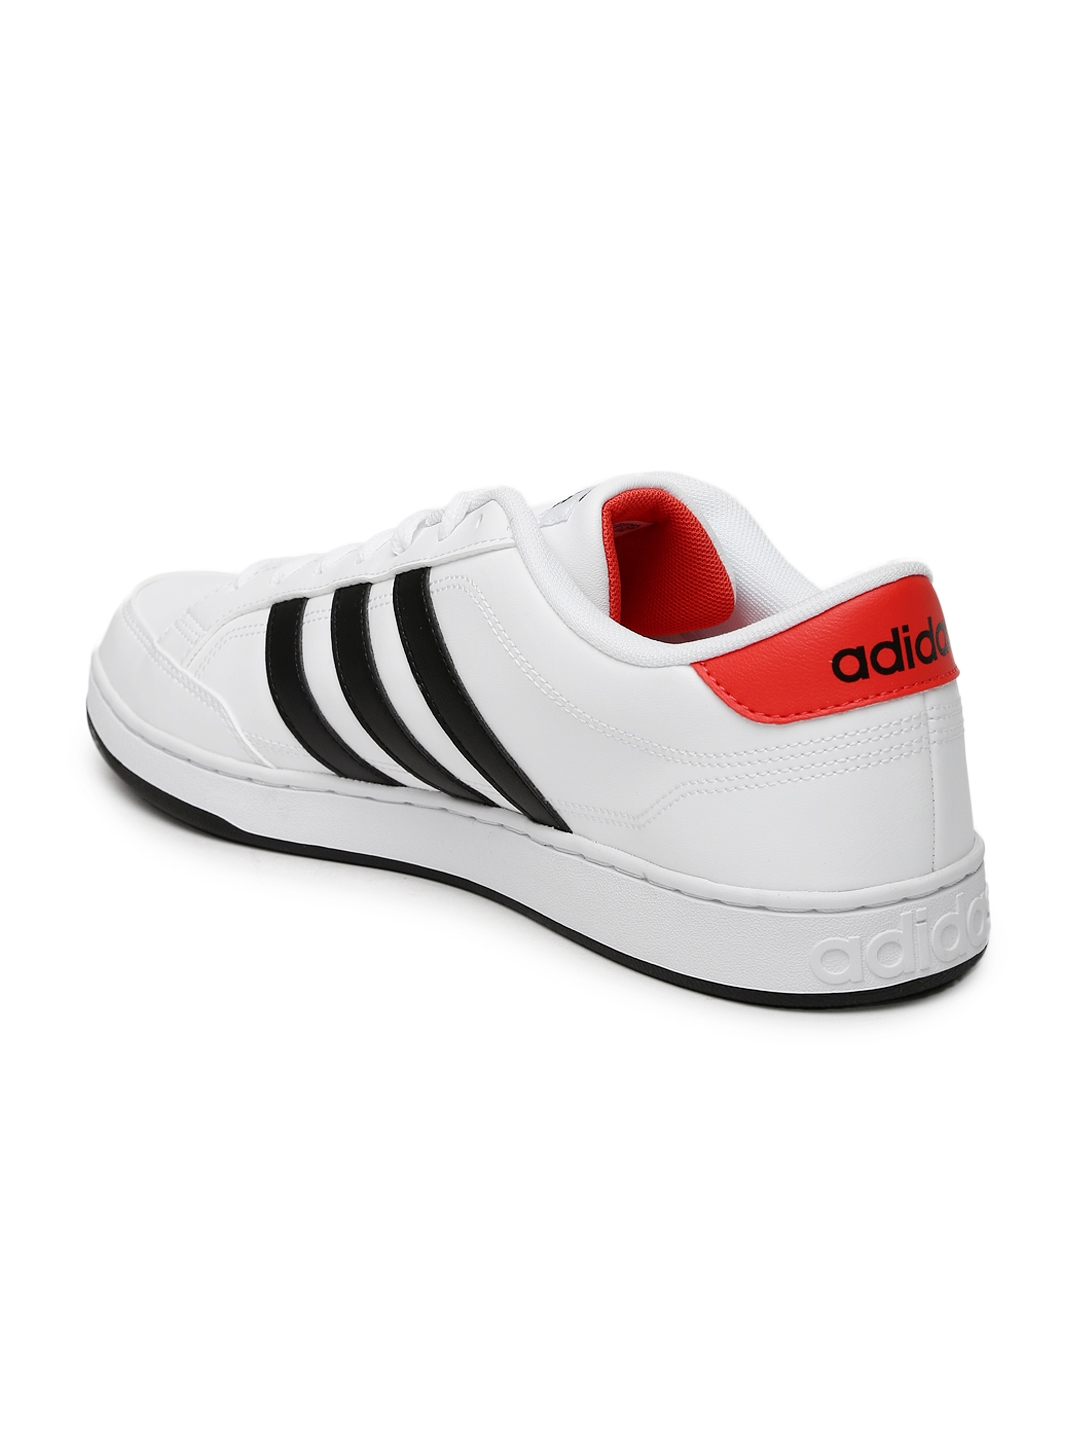 c8bf96b986166 get latest buy adidas neo men navy courtset sneakers wy8smsf9fqi 26406  22ca2  where can i buy image. more colours. adidas neo 2c29f 43bb6